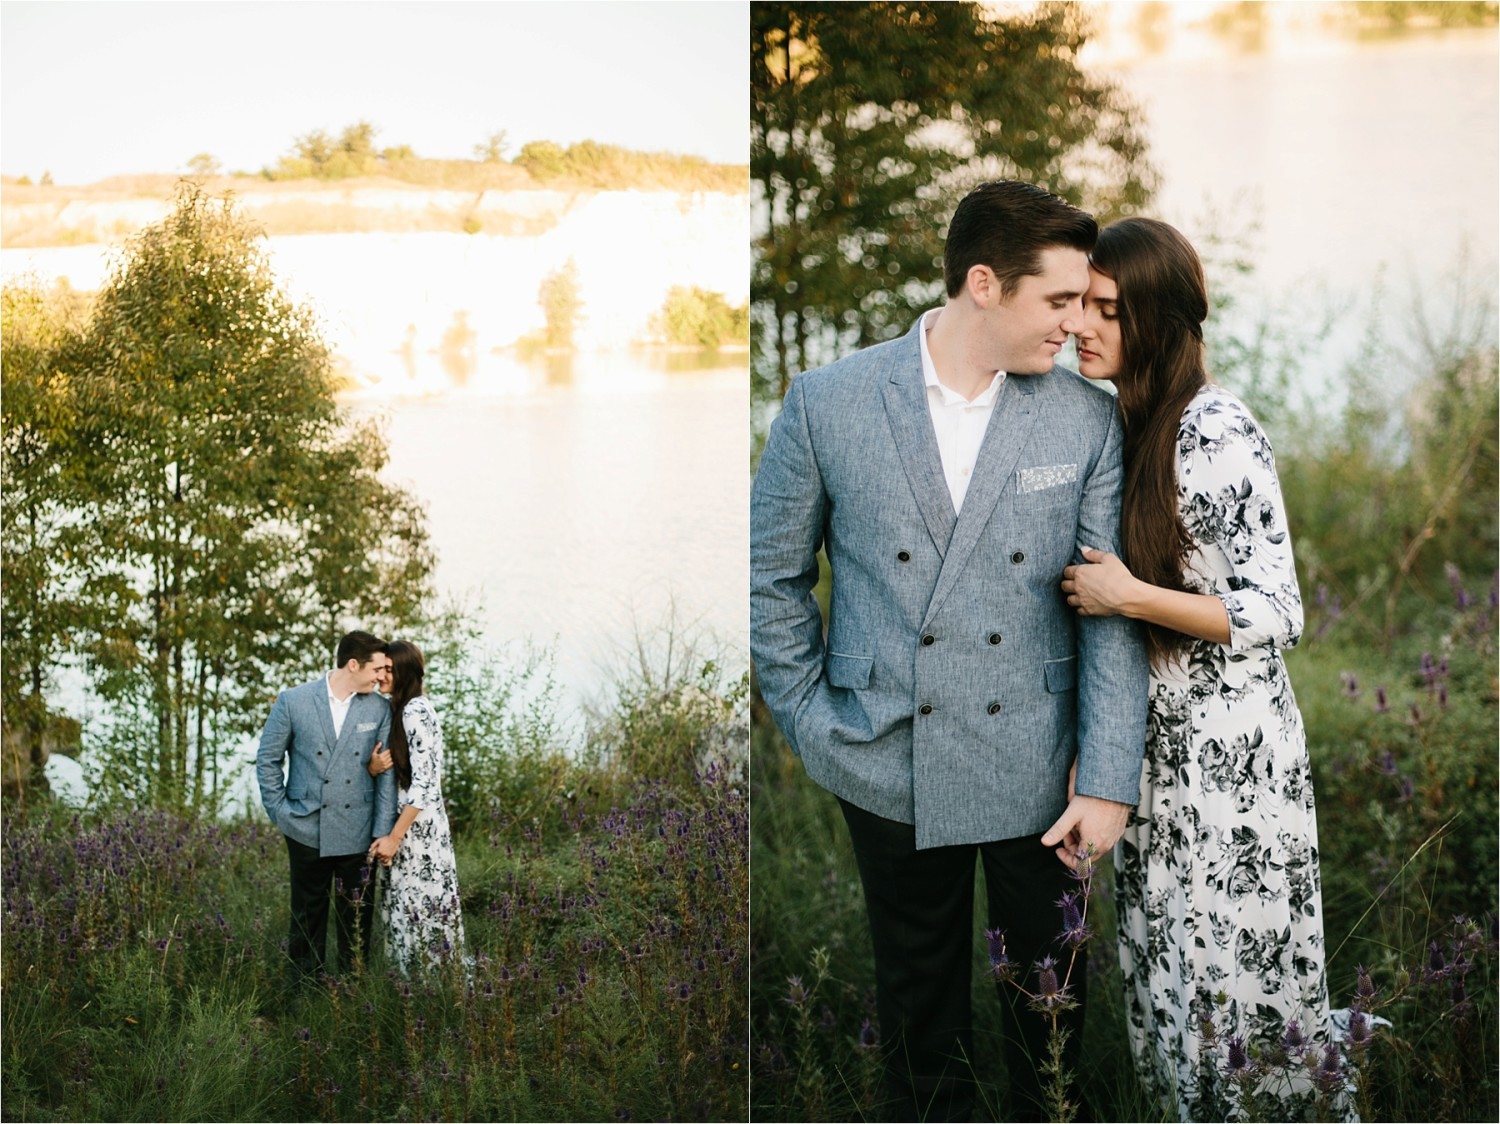 an-intimate-sunrise-session-by-north-texas-wedding-photographer-rachel-meagan-photography-_-35